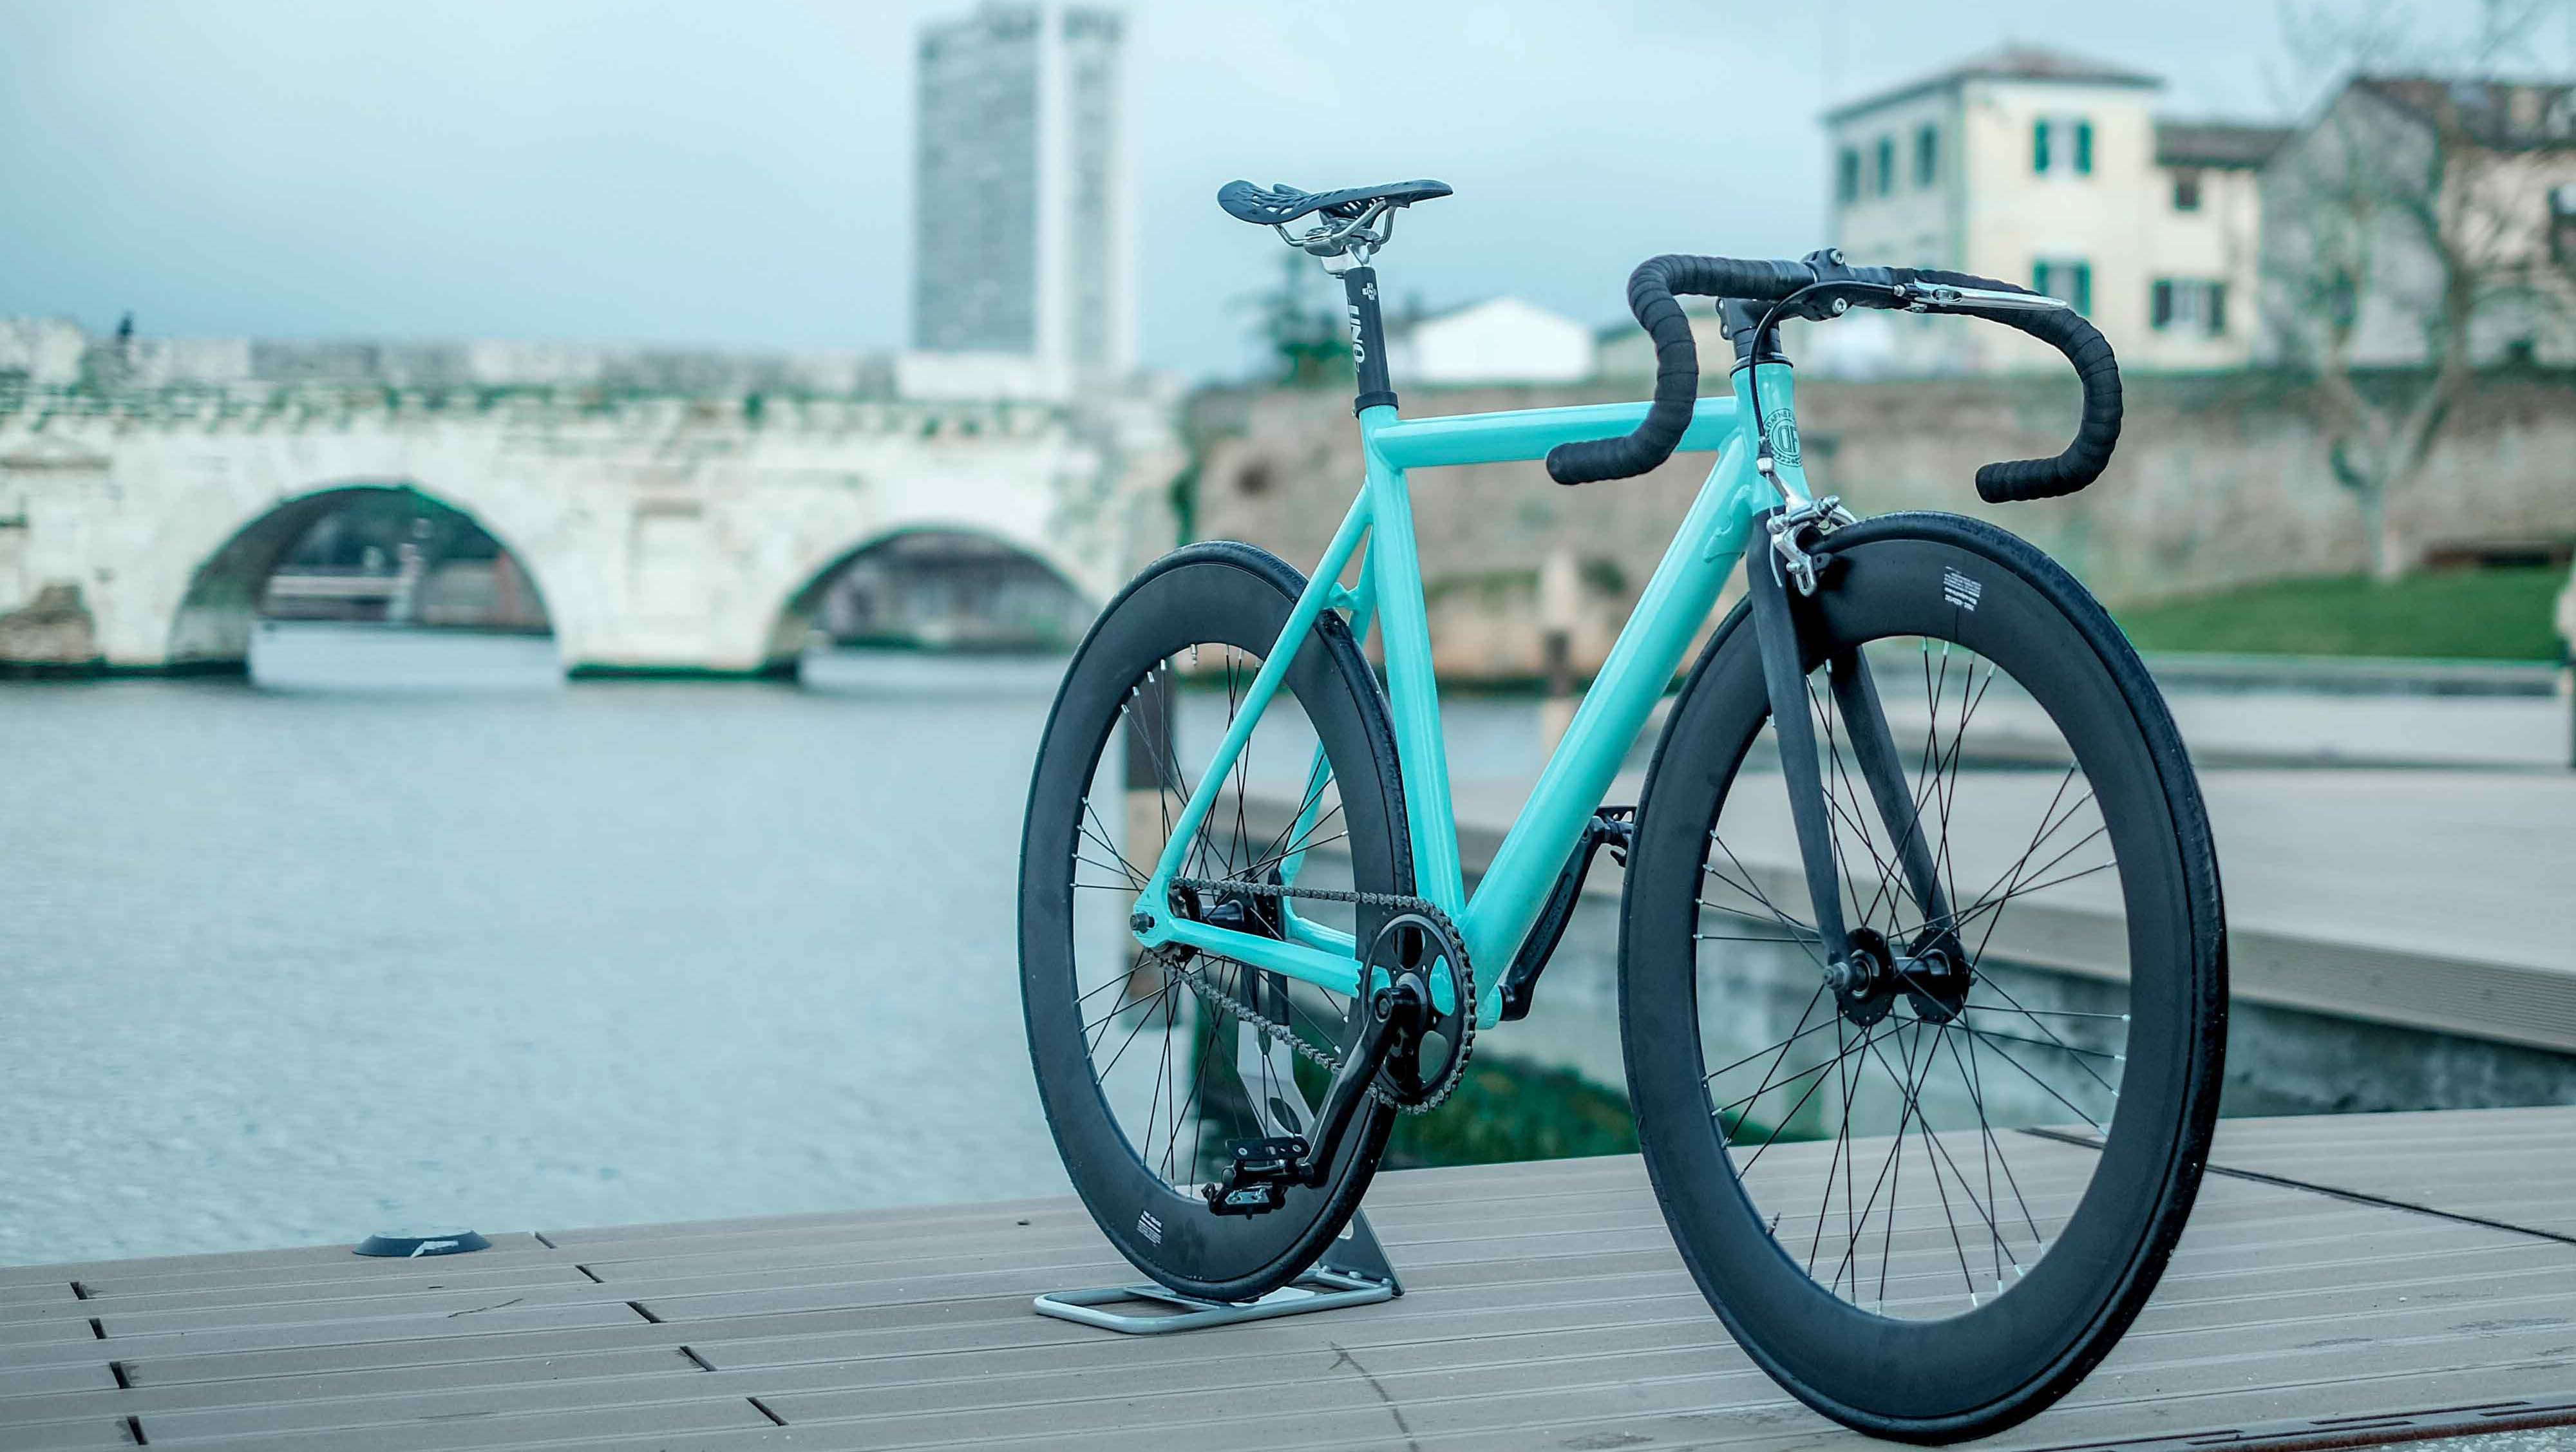 Vendita Biciclette Fixed Online - Dafne Fixed